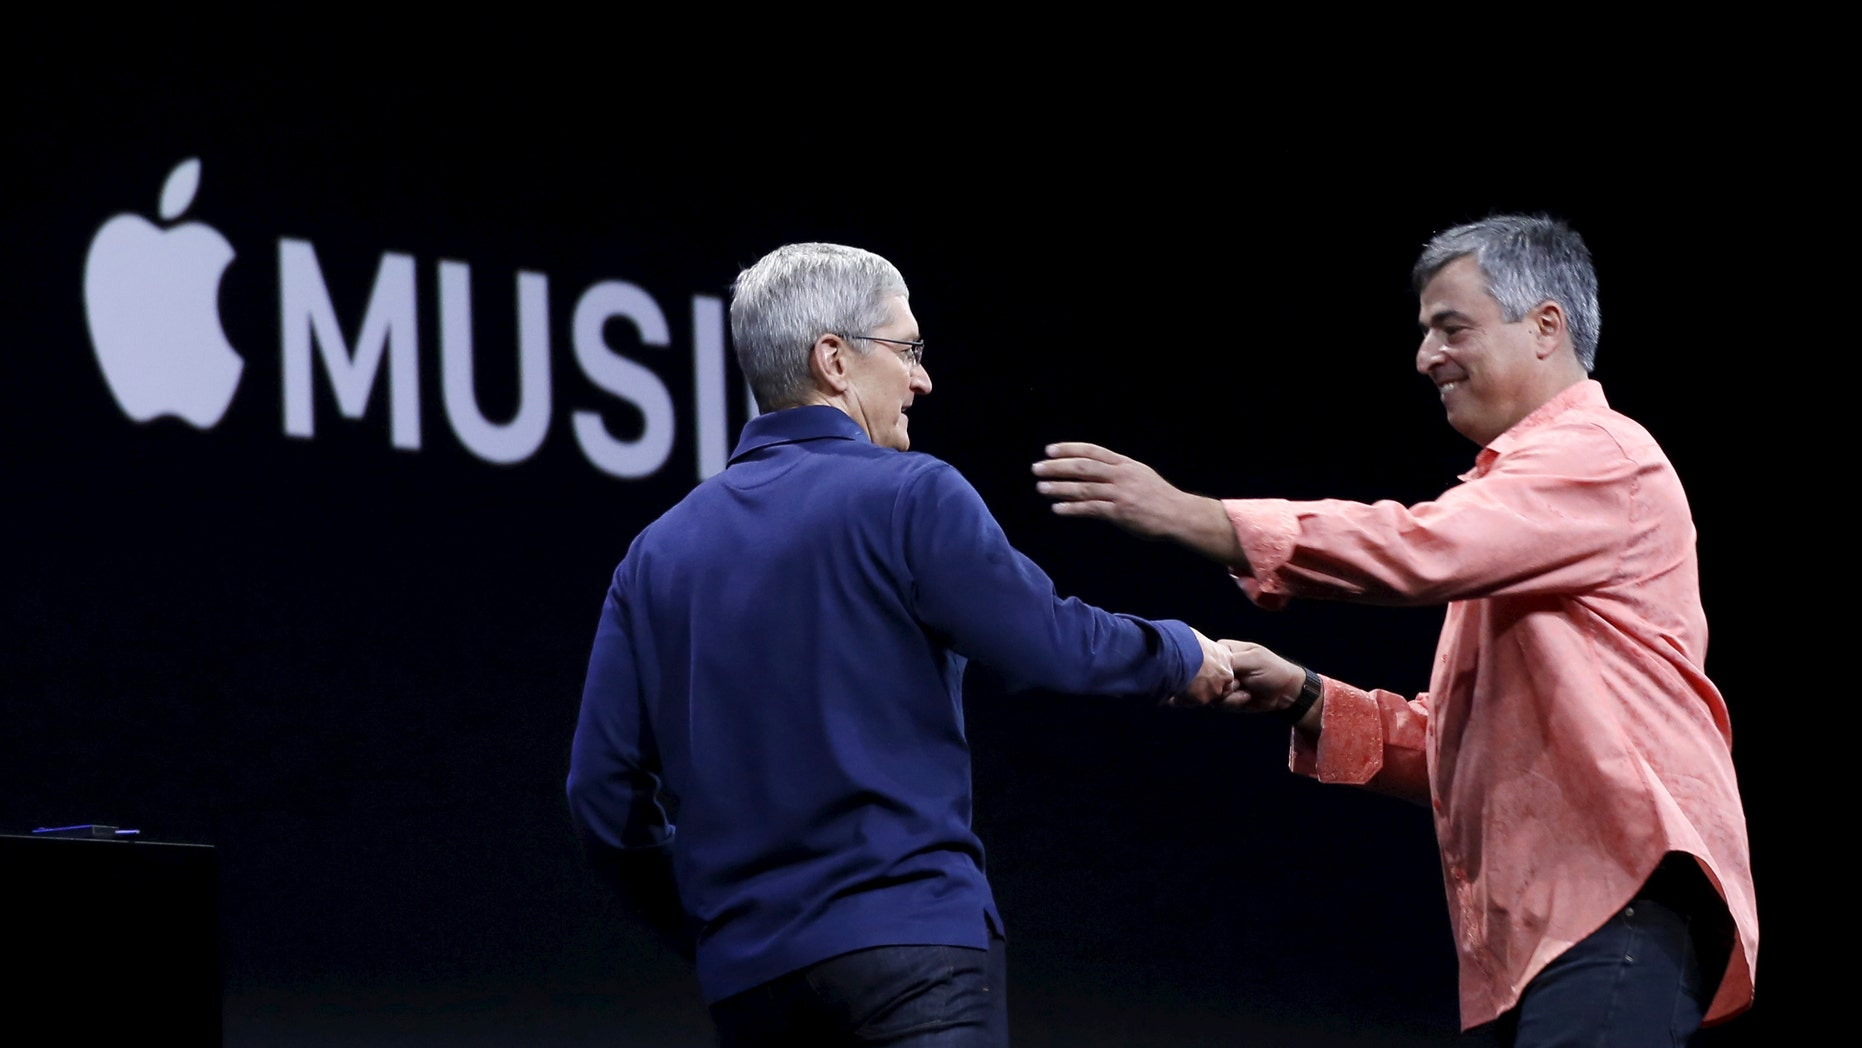 File photo: Apple CEO Tim Cook (L) greets comparison clamp boss of internet services and program Eddy Cue during his keynote residence during a Worldwide Developers Conference in San Francisco, California Jun 8, 2015.